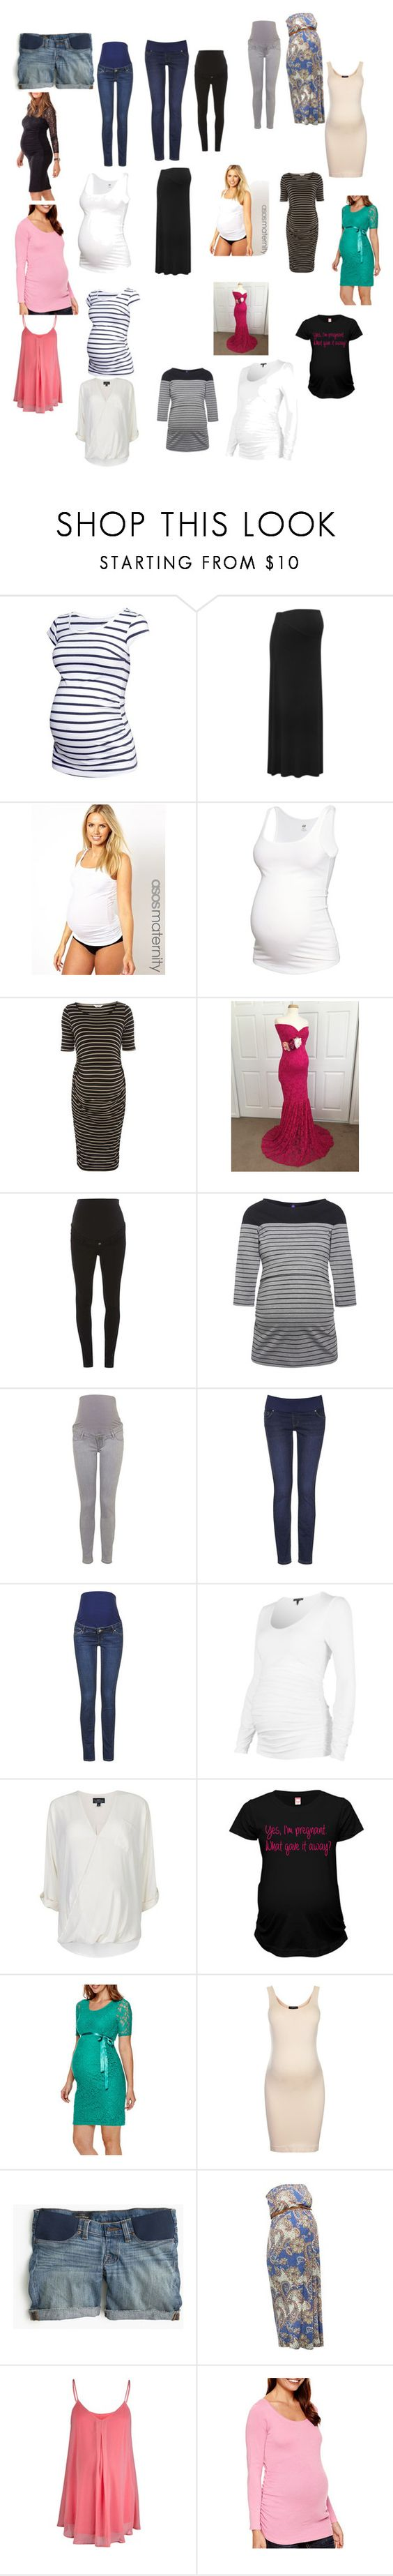 """""""Untitled #322"""" by peigestyles ❤ liked on Polyvore featuring H&M, M&Co, Emma Jane, Dorothy Perkins, Topshop, J.Crew, Rock-a-Bye Rosie and Isabella Oliver"""